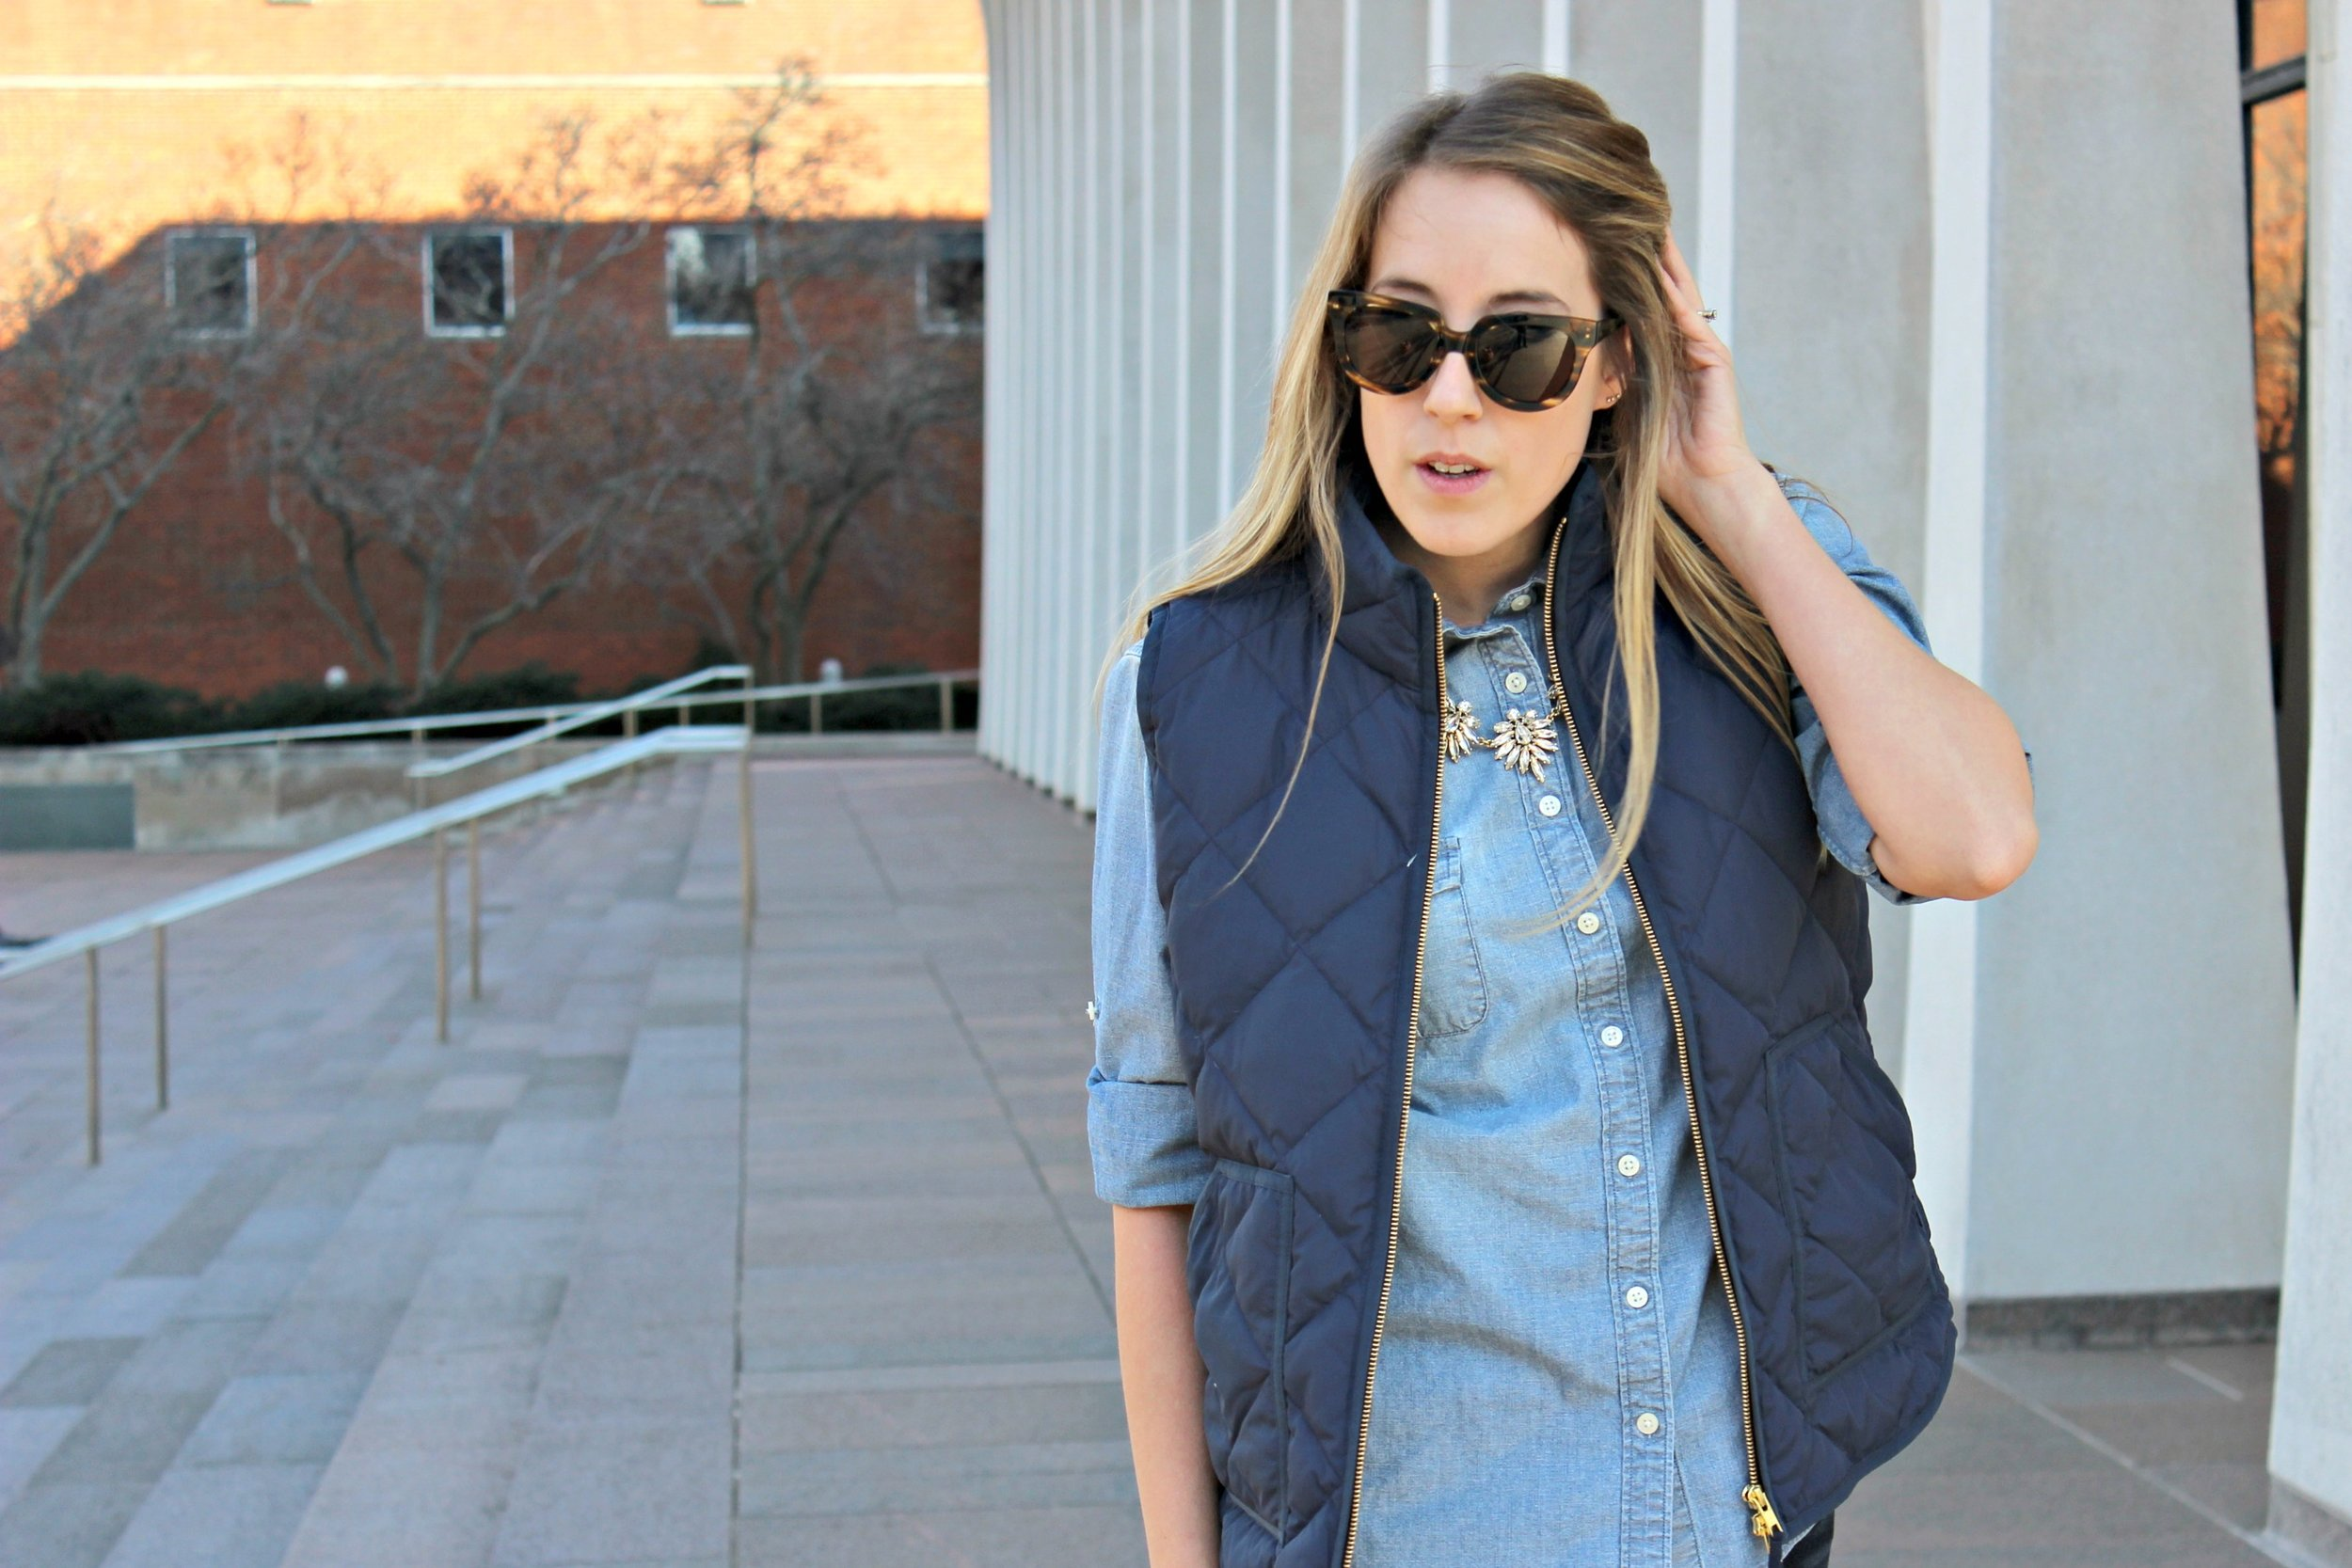 Wearing: blend in to blue chambray // another way to style a classic chambray shirt for every day